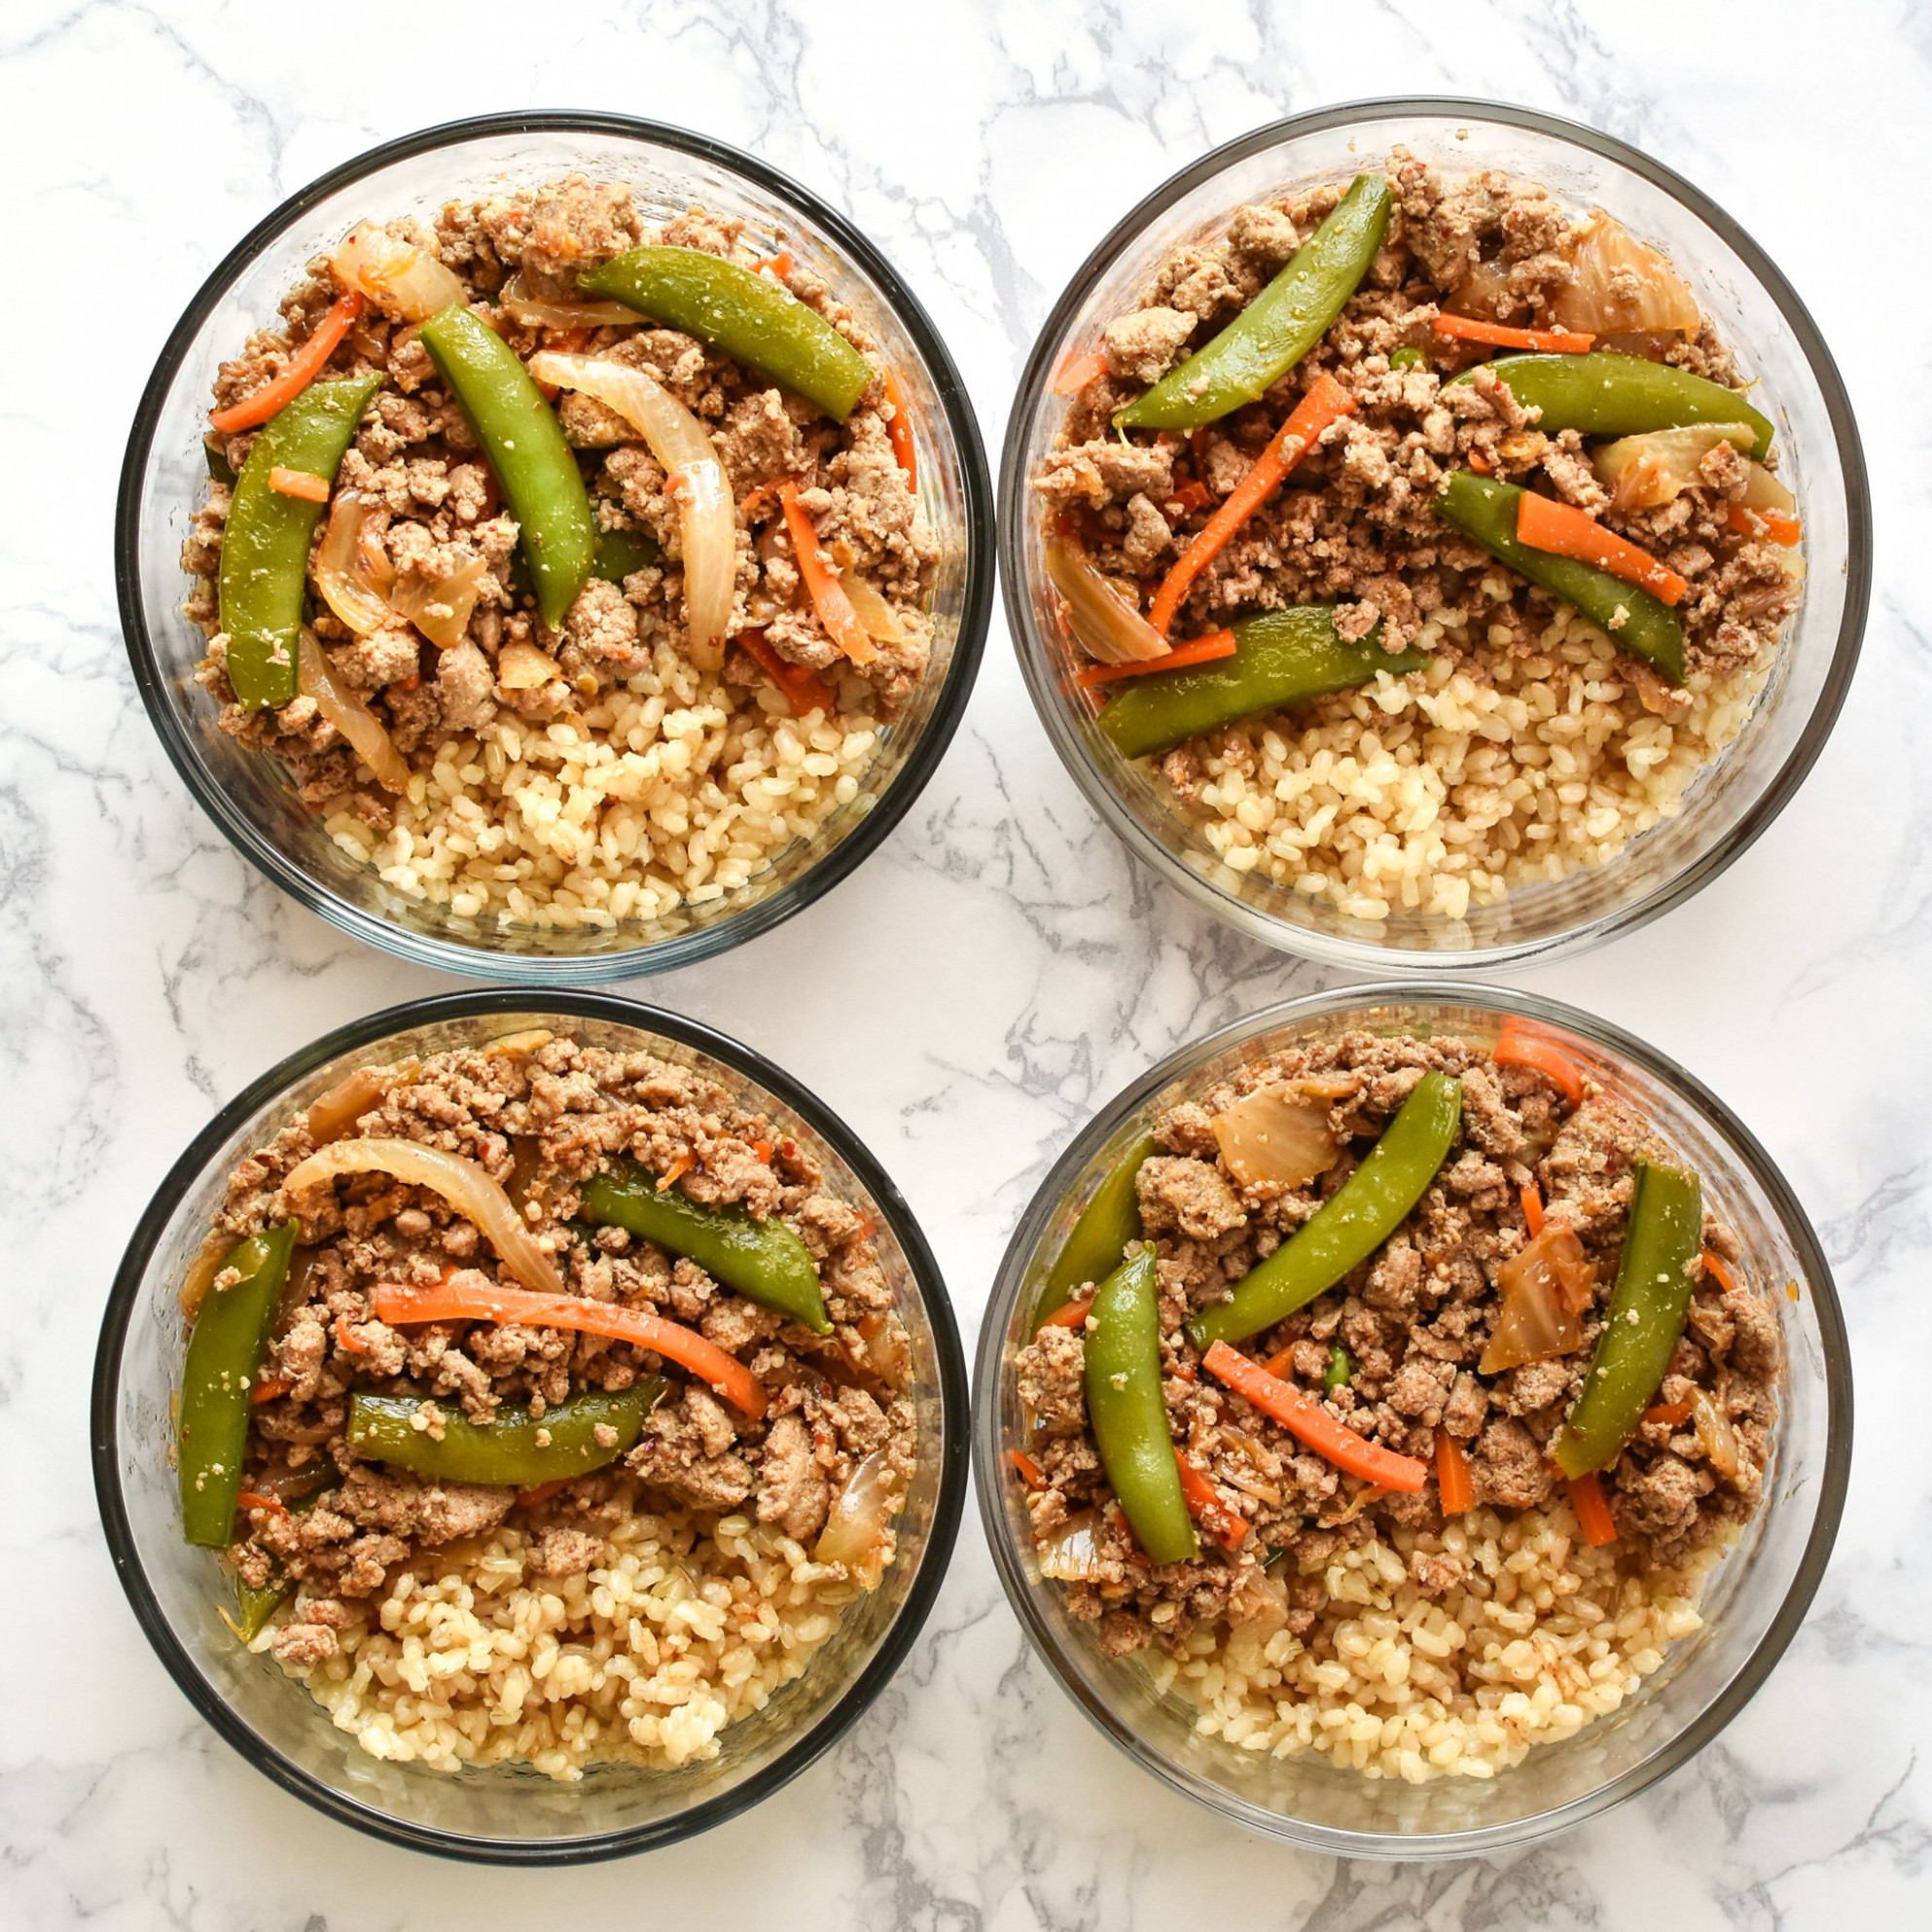 Meal Prep Ground Turkey Snap Pea Stir Fry Rice Bowls ..